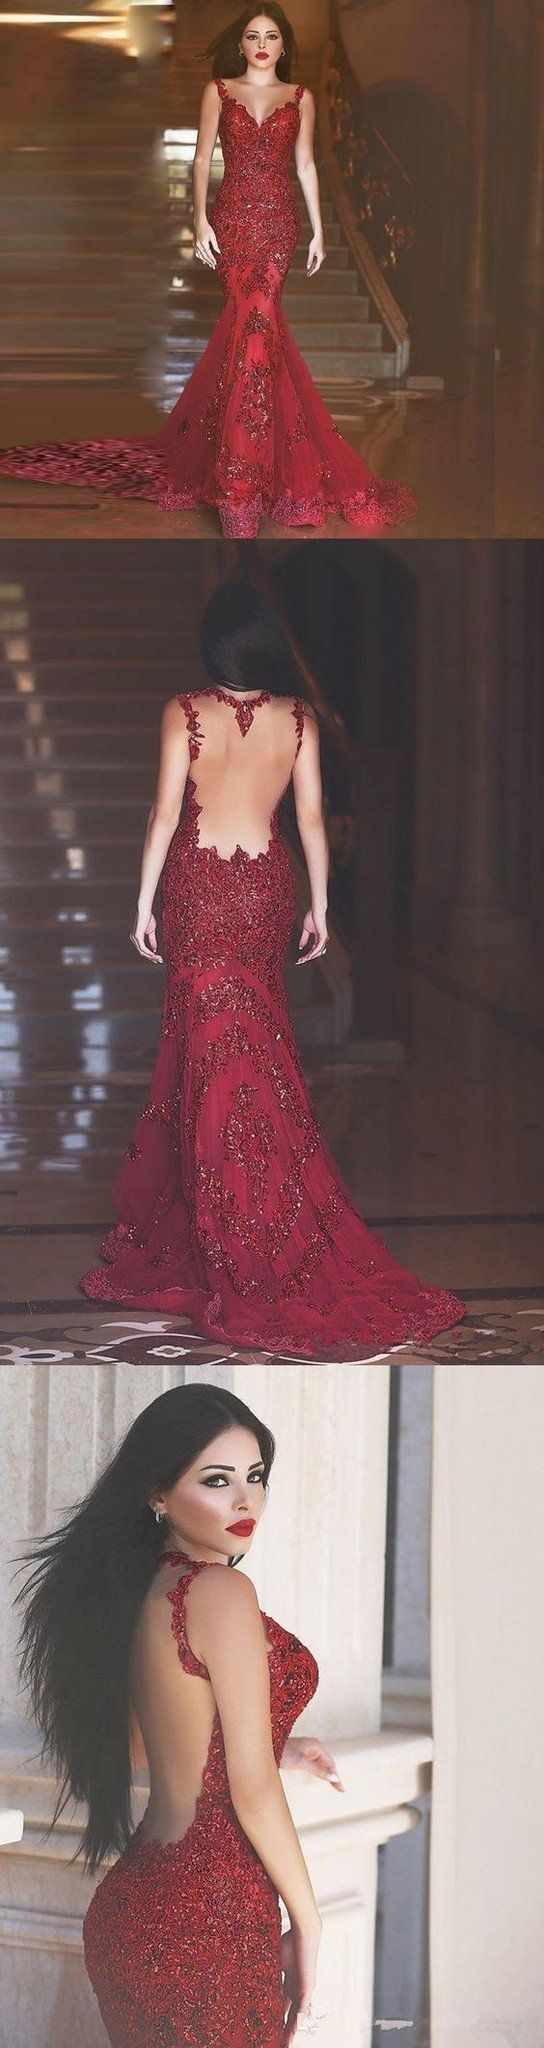 Red sparkly sequin mermaid long prom dresses backless long prom